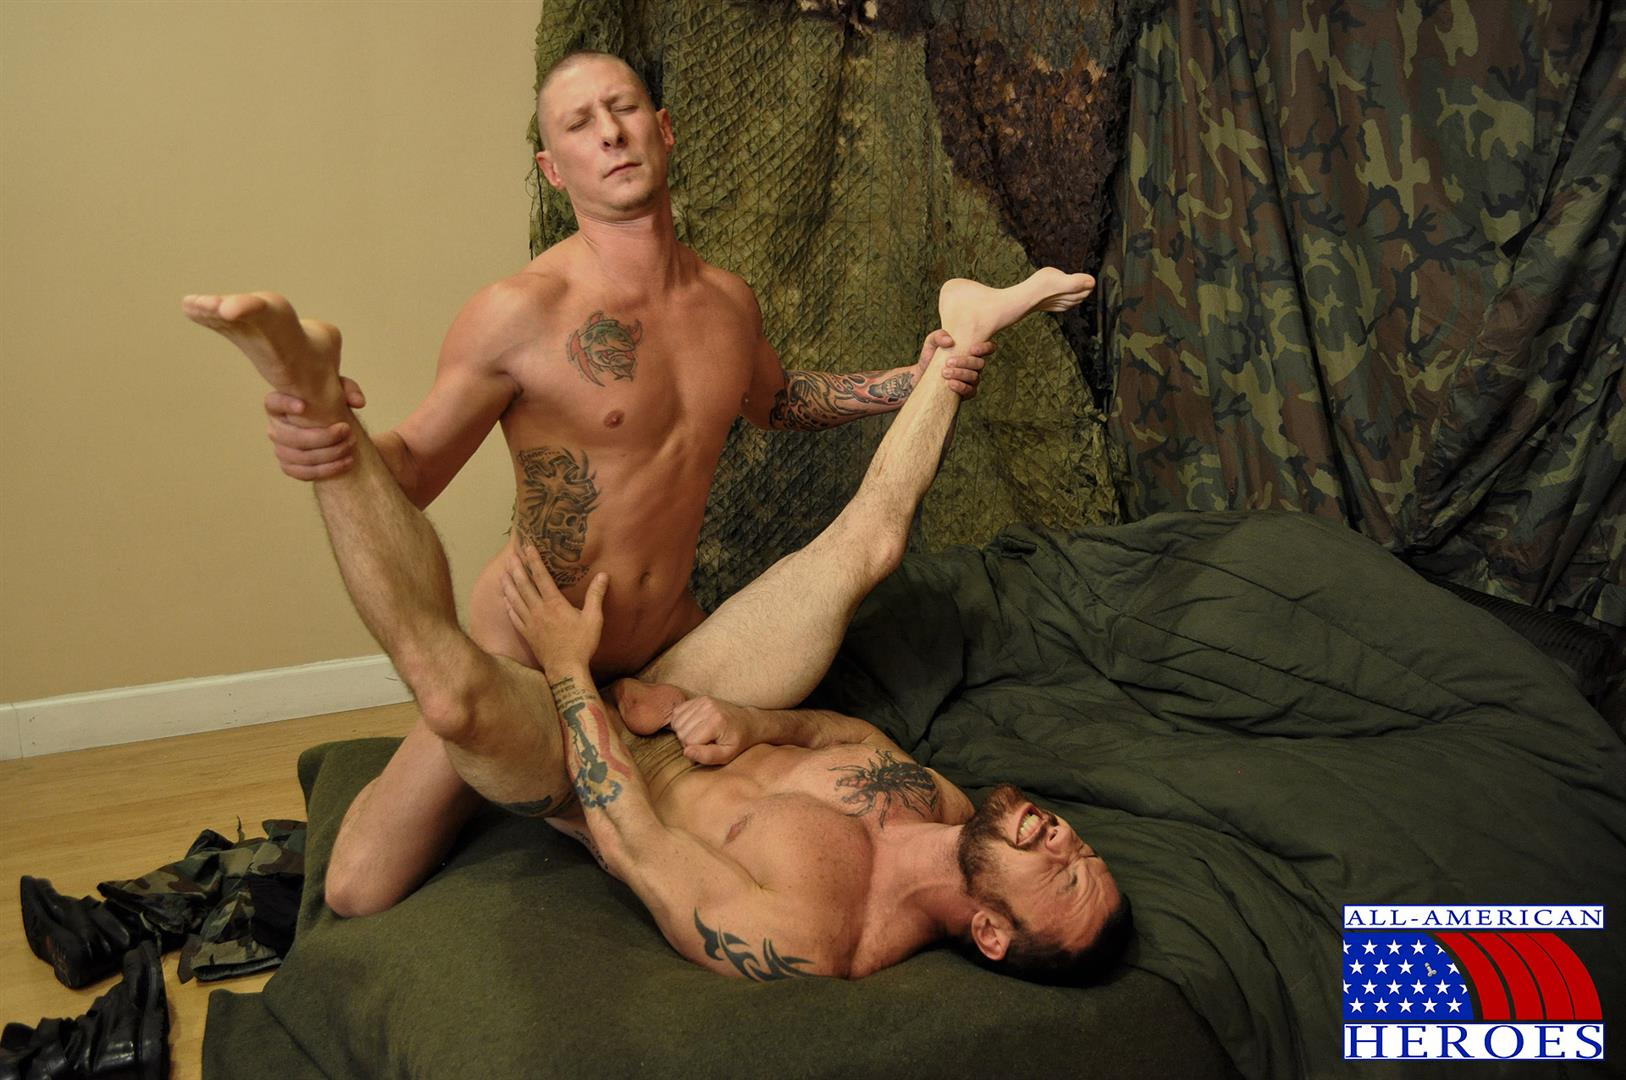 gay military picture porn Add comment  Free Gay Porn · Adult Gay Sites.